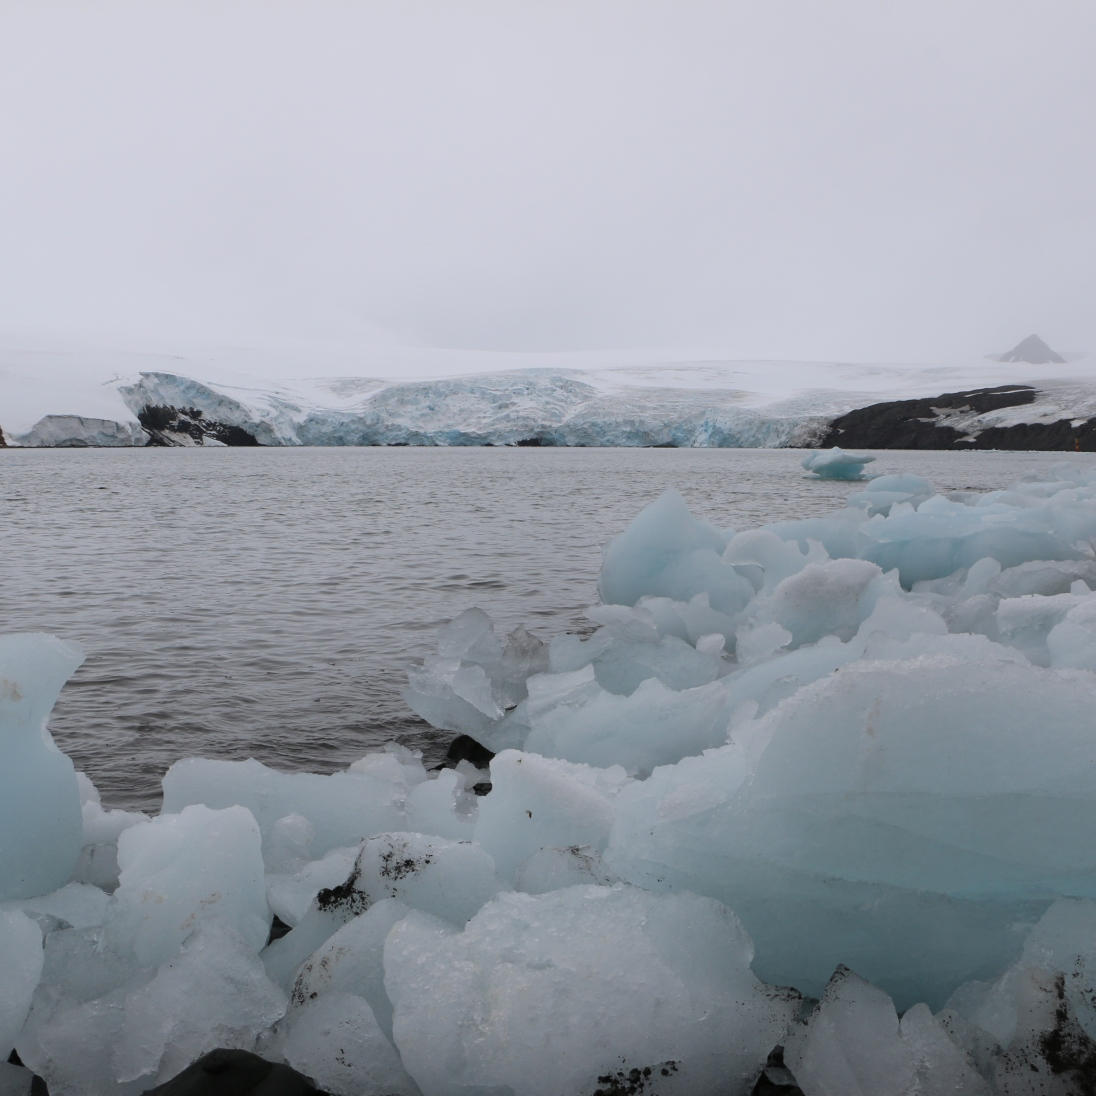 Ice and glaciers in Potter's Cove.